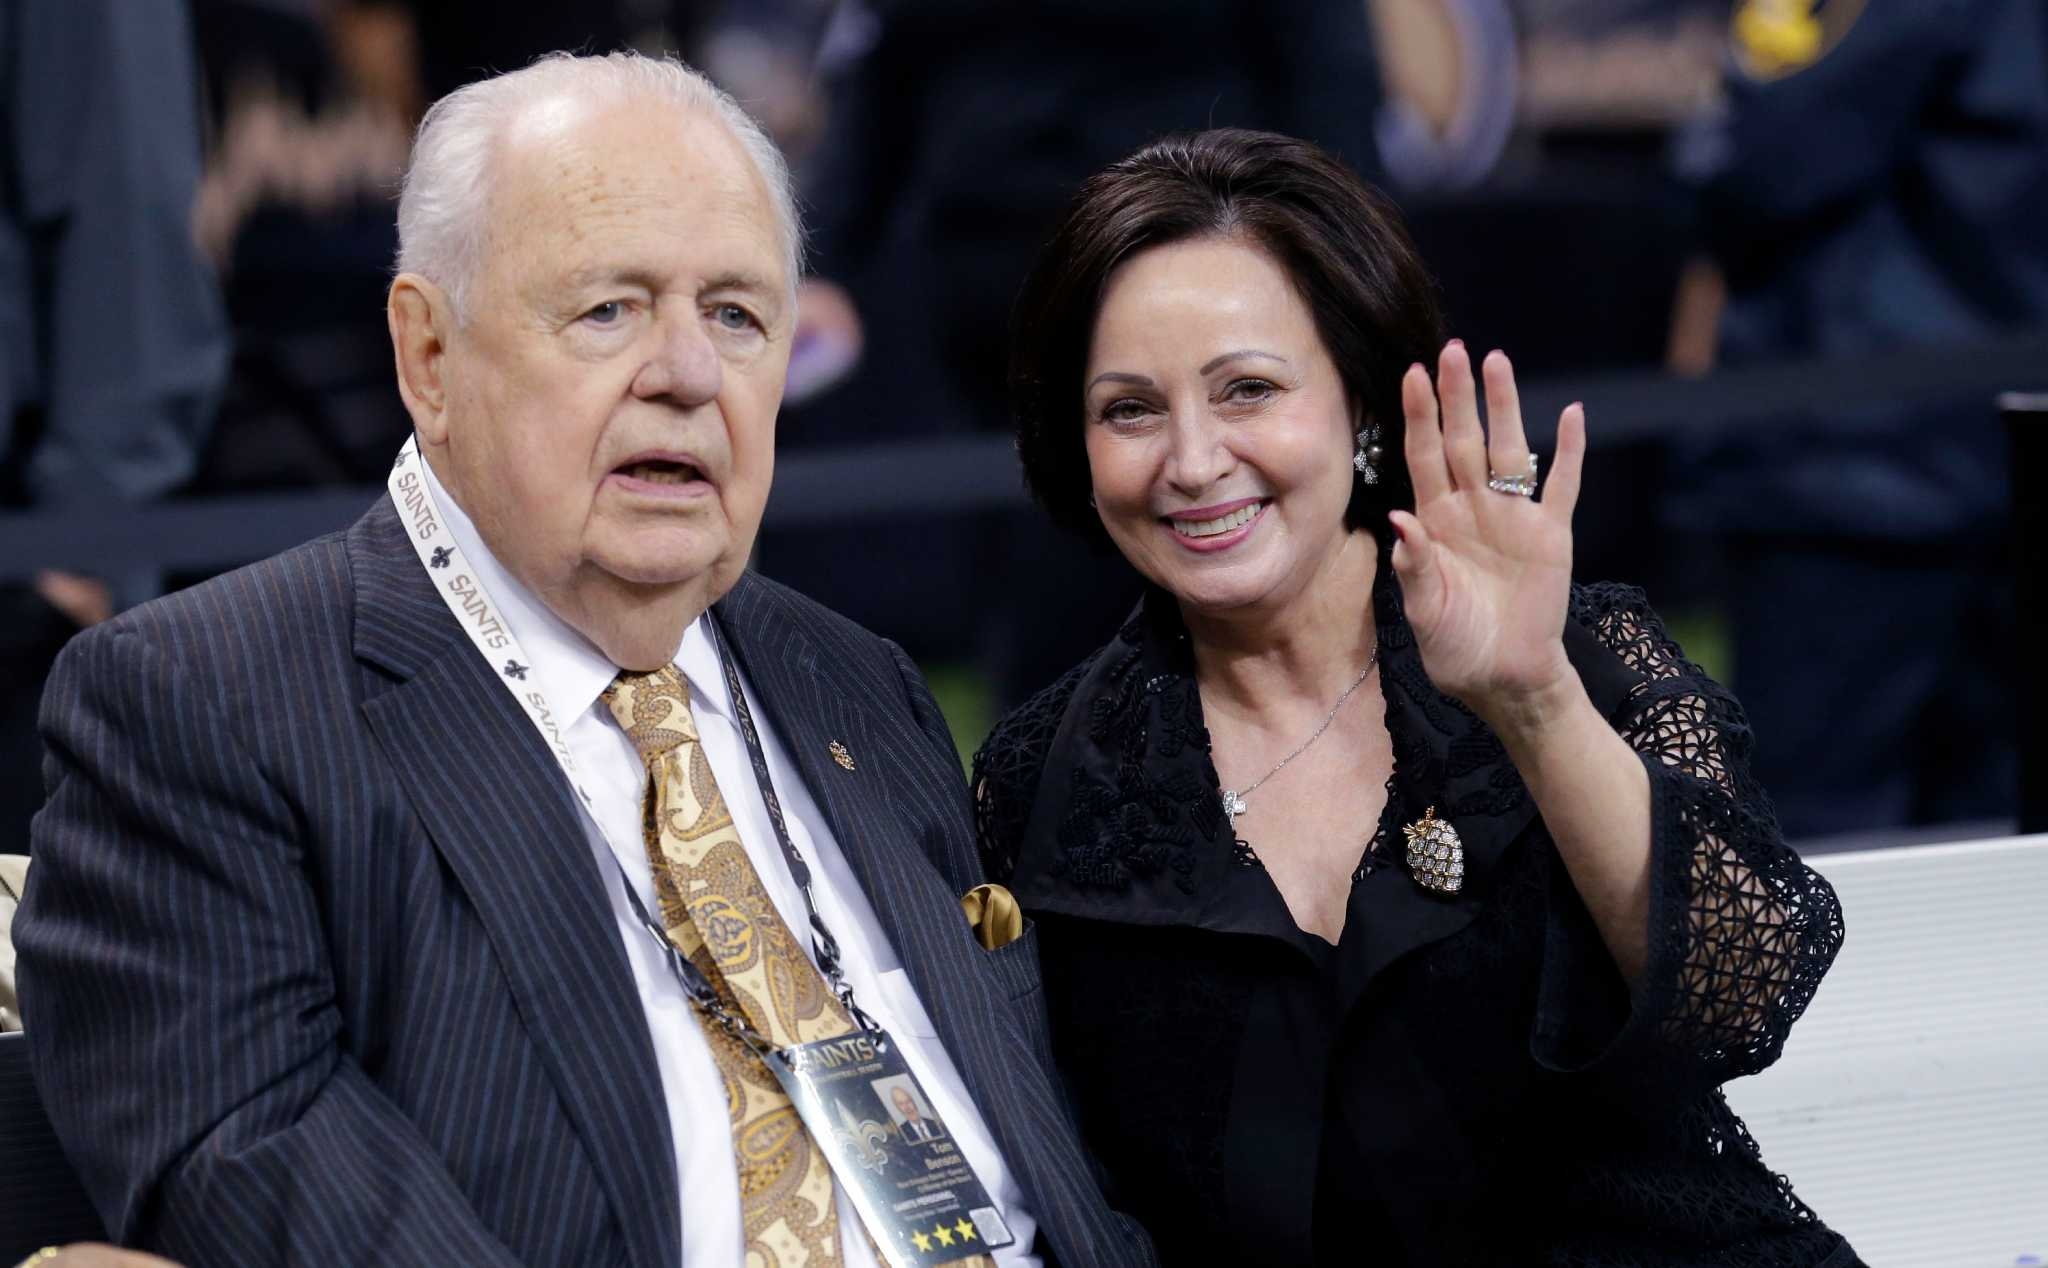 Gayle Benson S Past Now In The Spotlight Expressnews Com